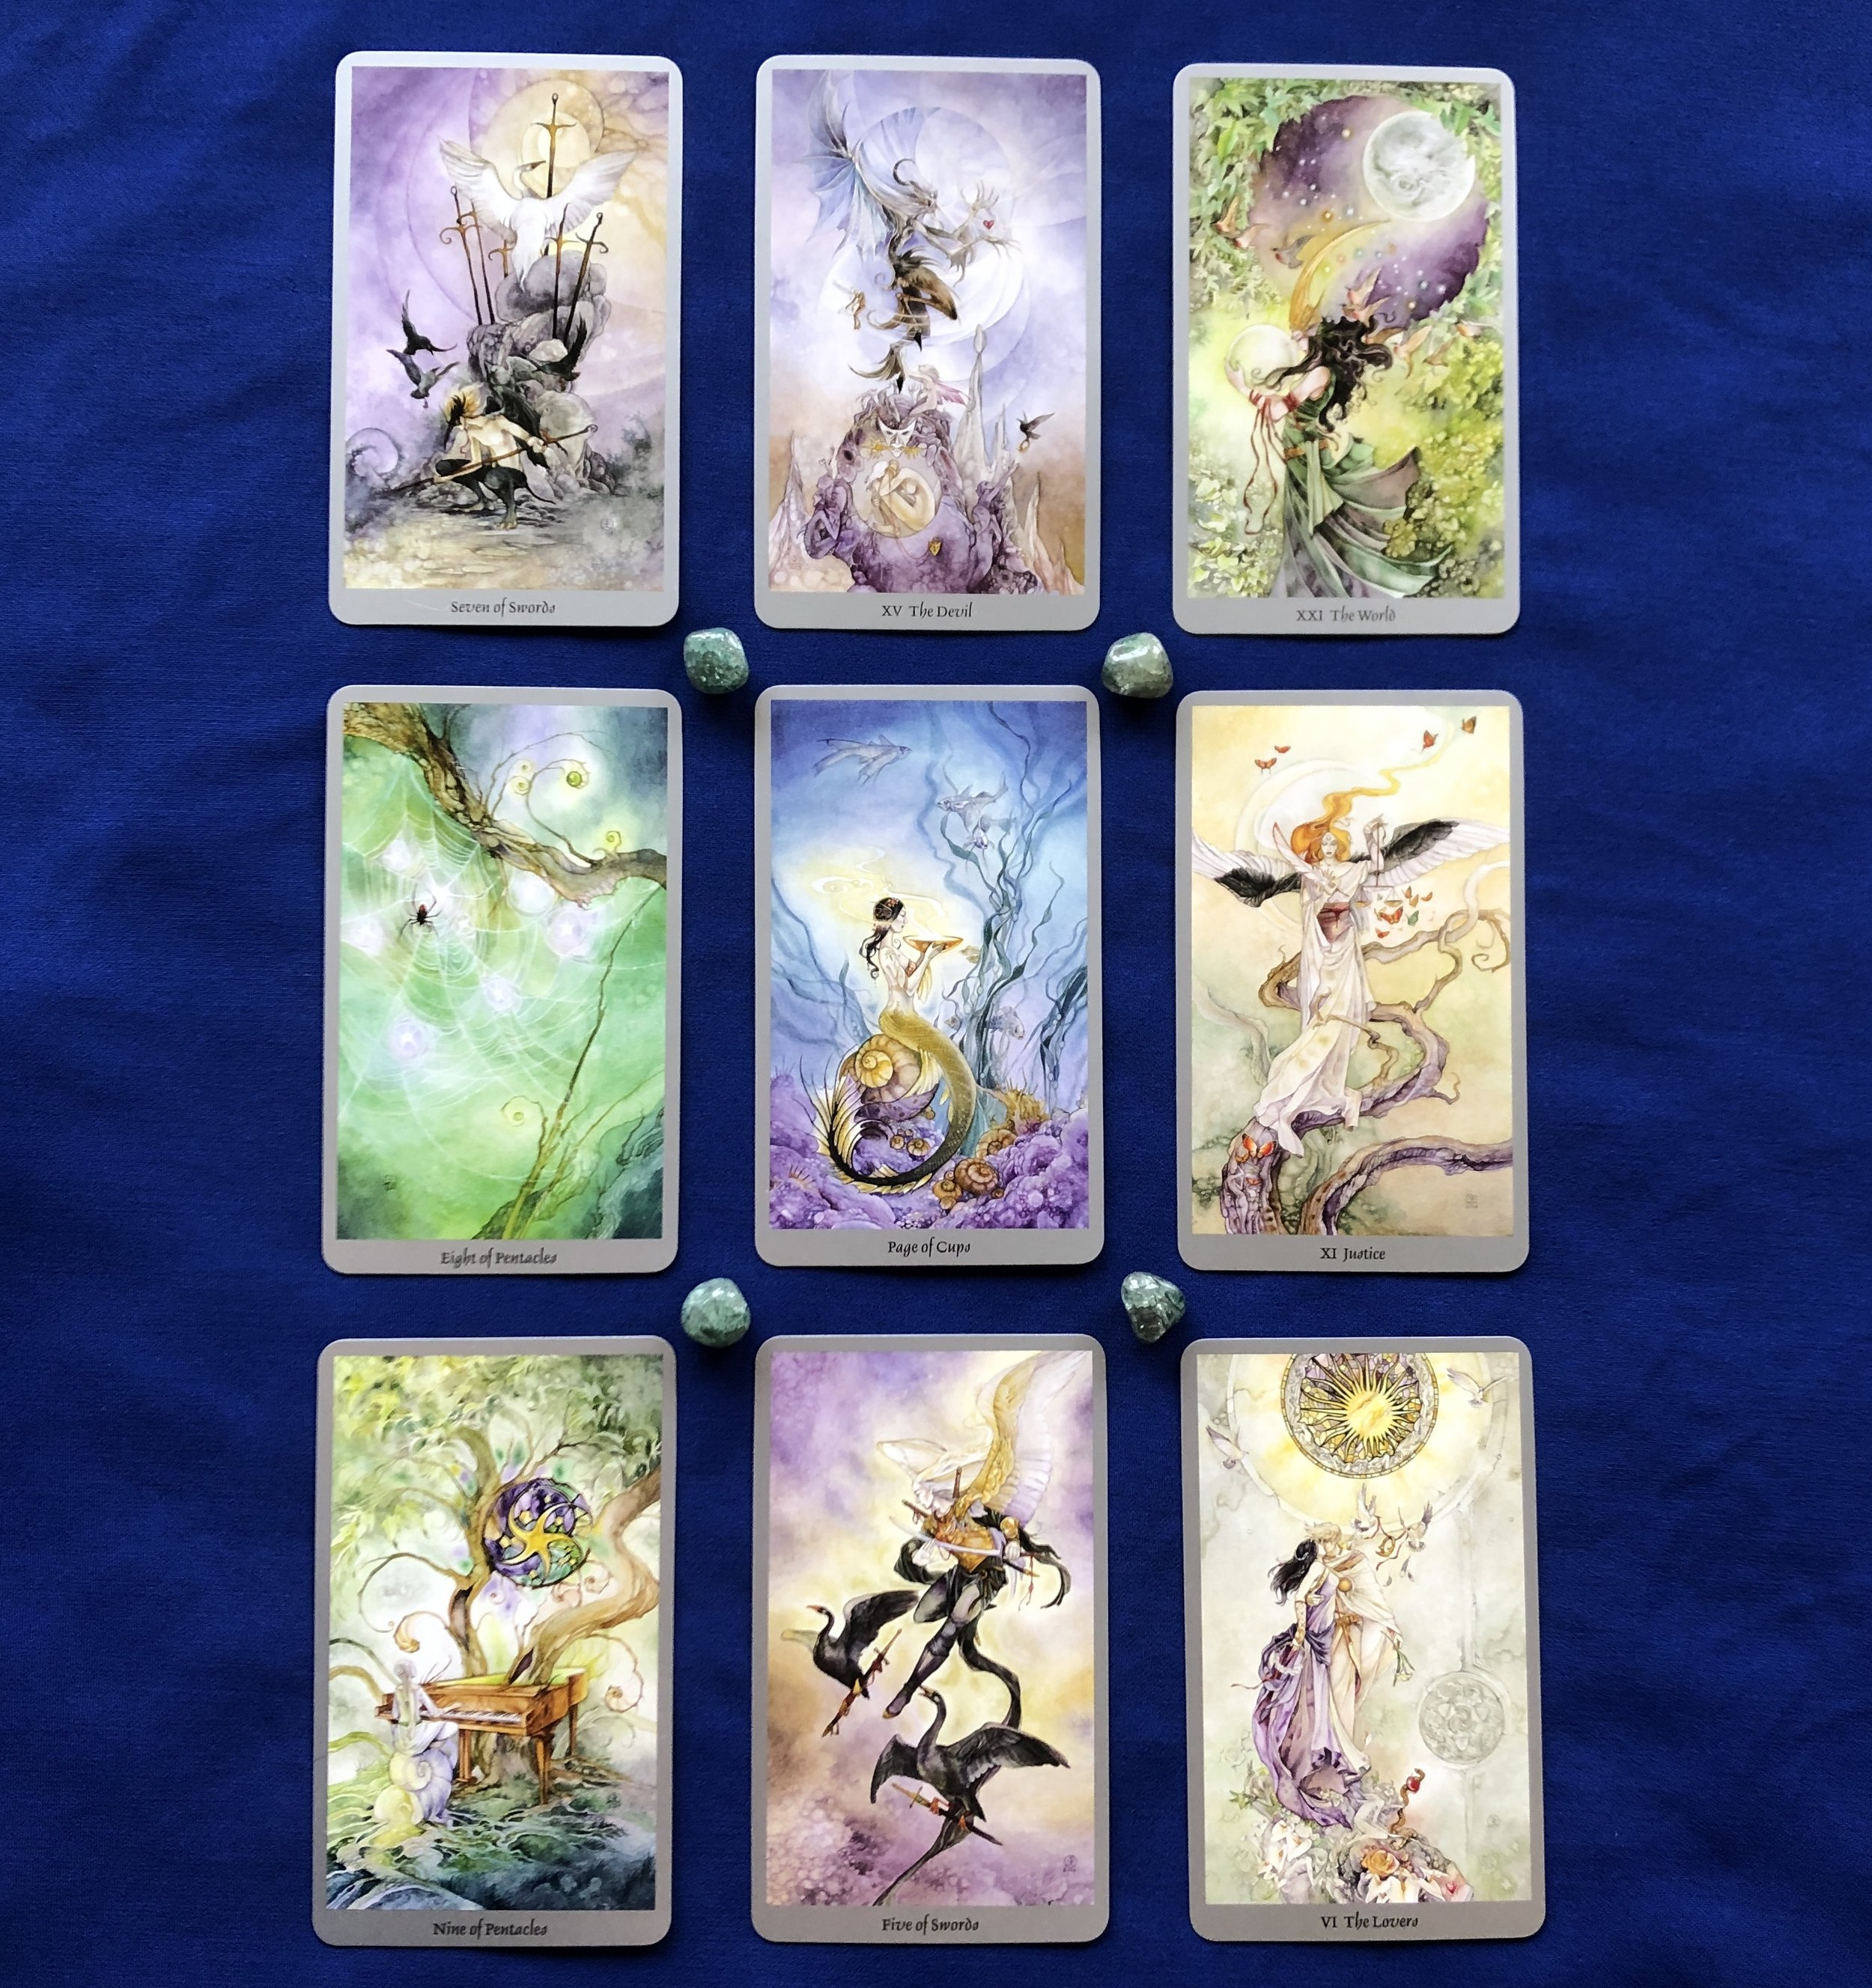 Top Row: 1, 2, and 3 Birthpaths Middle Row: 4, 5, and 6 Birthpaths Bottom Row: 7, 8, and 9 Birthpaths